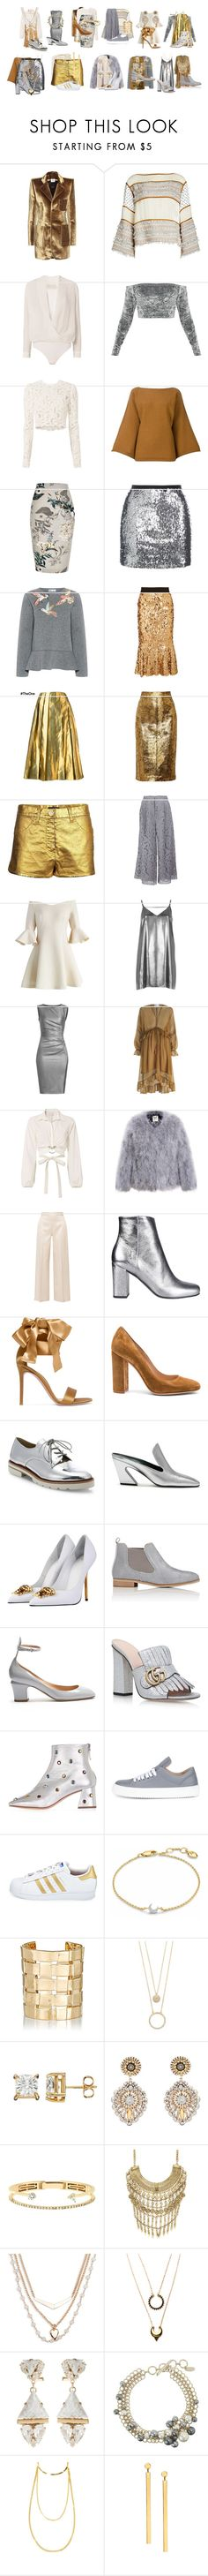 """""""Untitled #4517"""" by luciana-boneca on Polyvore featuring Vetements, See by Chloé, Michelle Mason, A.L.C., Sonia Rykiel, River Island, Topshop, RED Valentino, Dolce&Gabbana and Arthur Arbesser"""